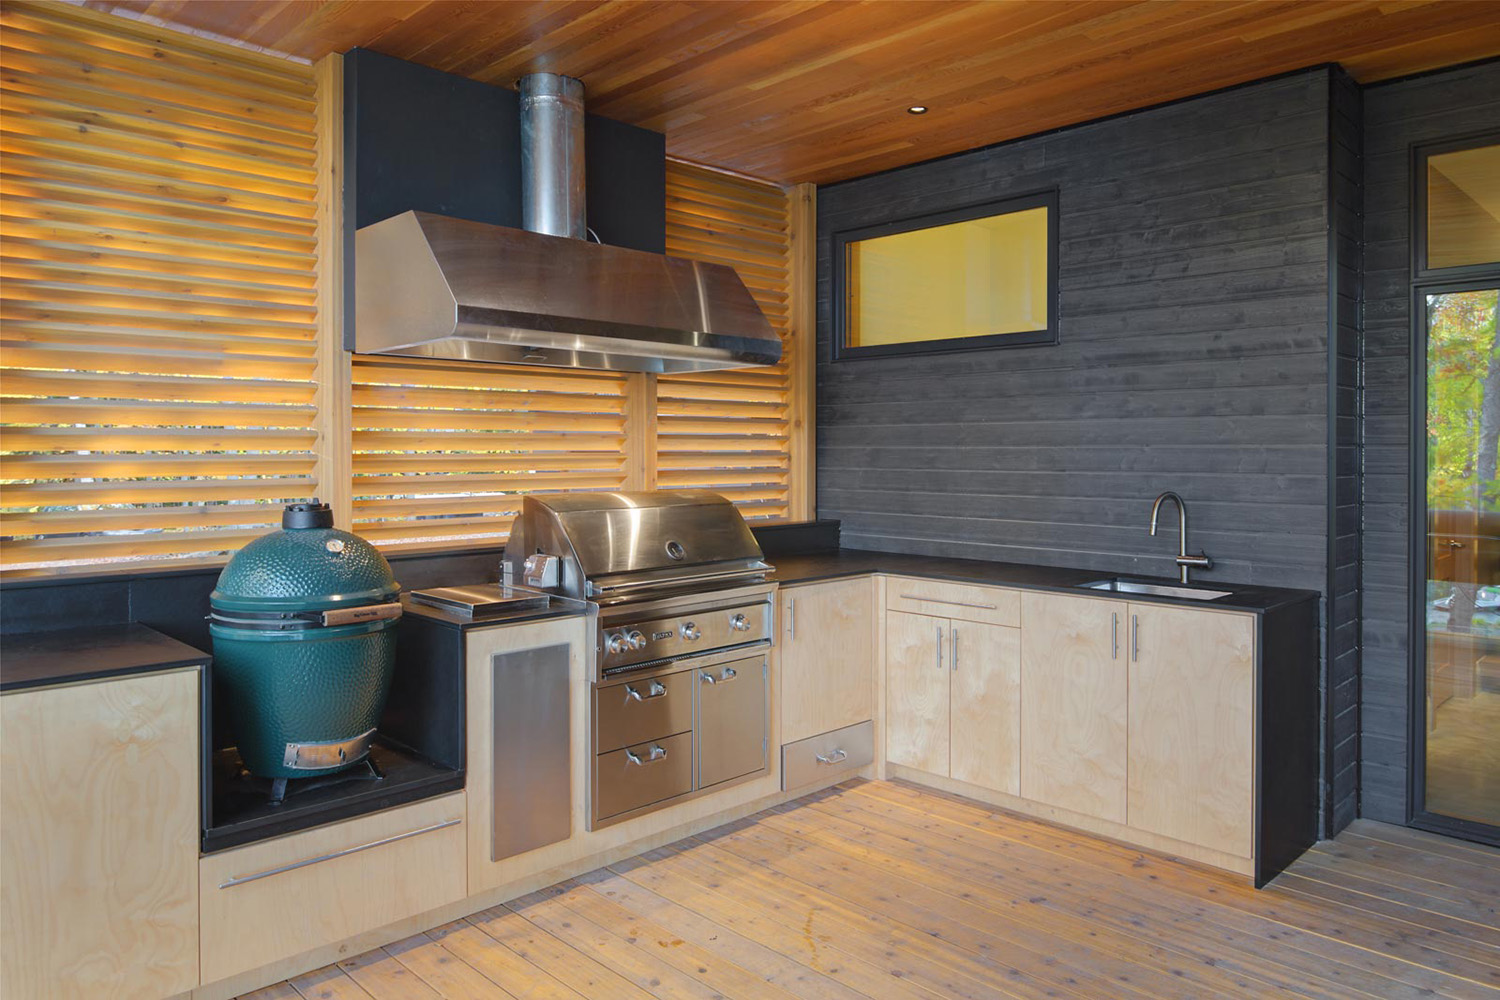 Exterior kitchen with integral BBQ and charcoal smoker with vent hood, maple cabinetry with a wood slat brise-soleil